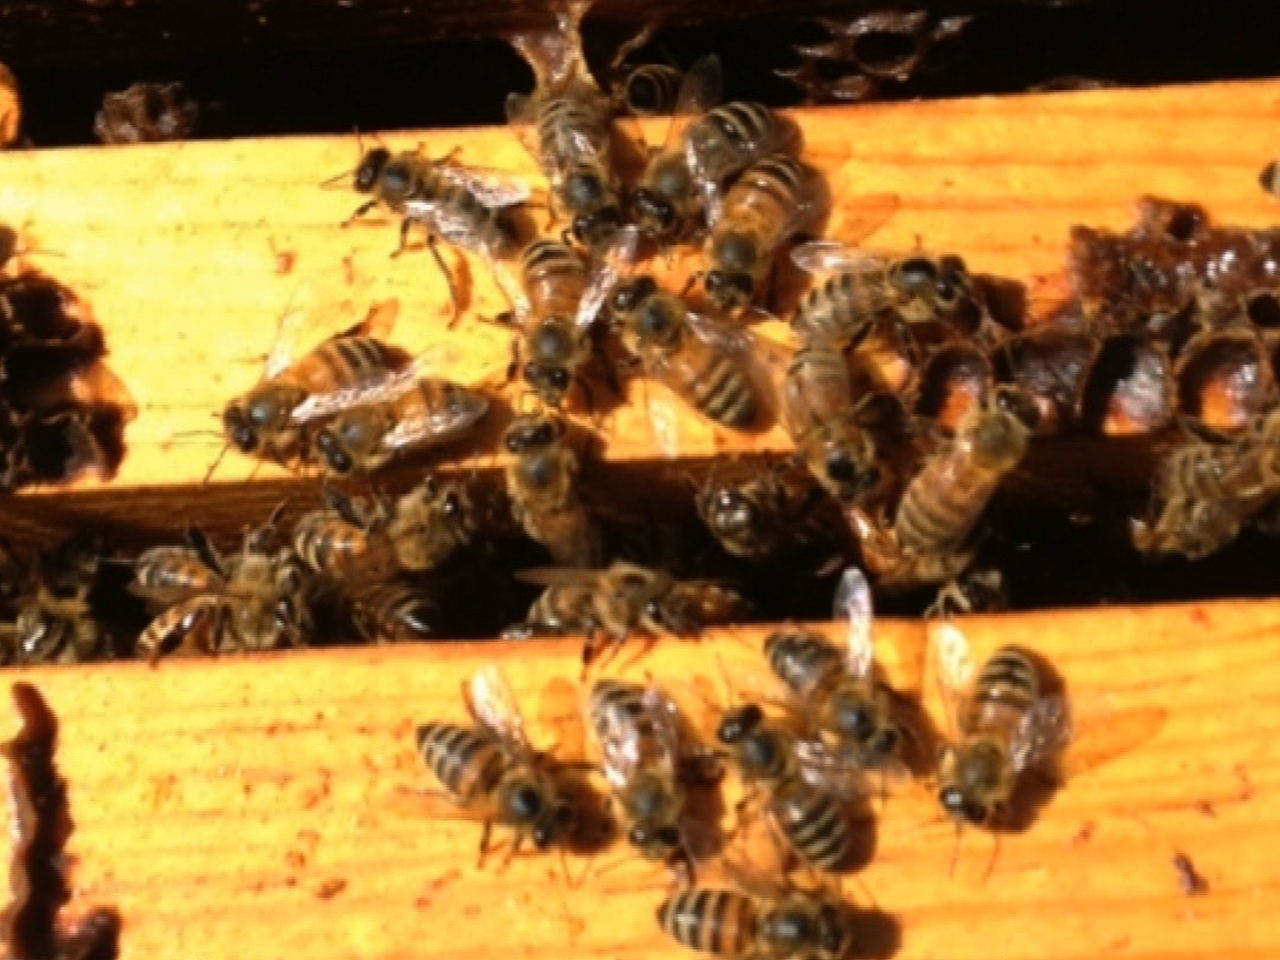 deepening honey bee crisis creates worry over food supply